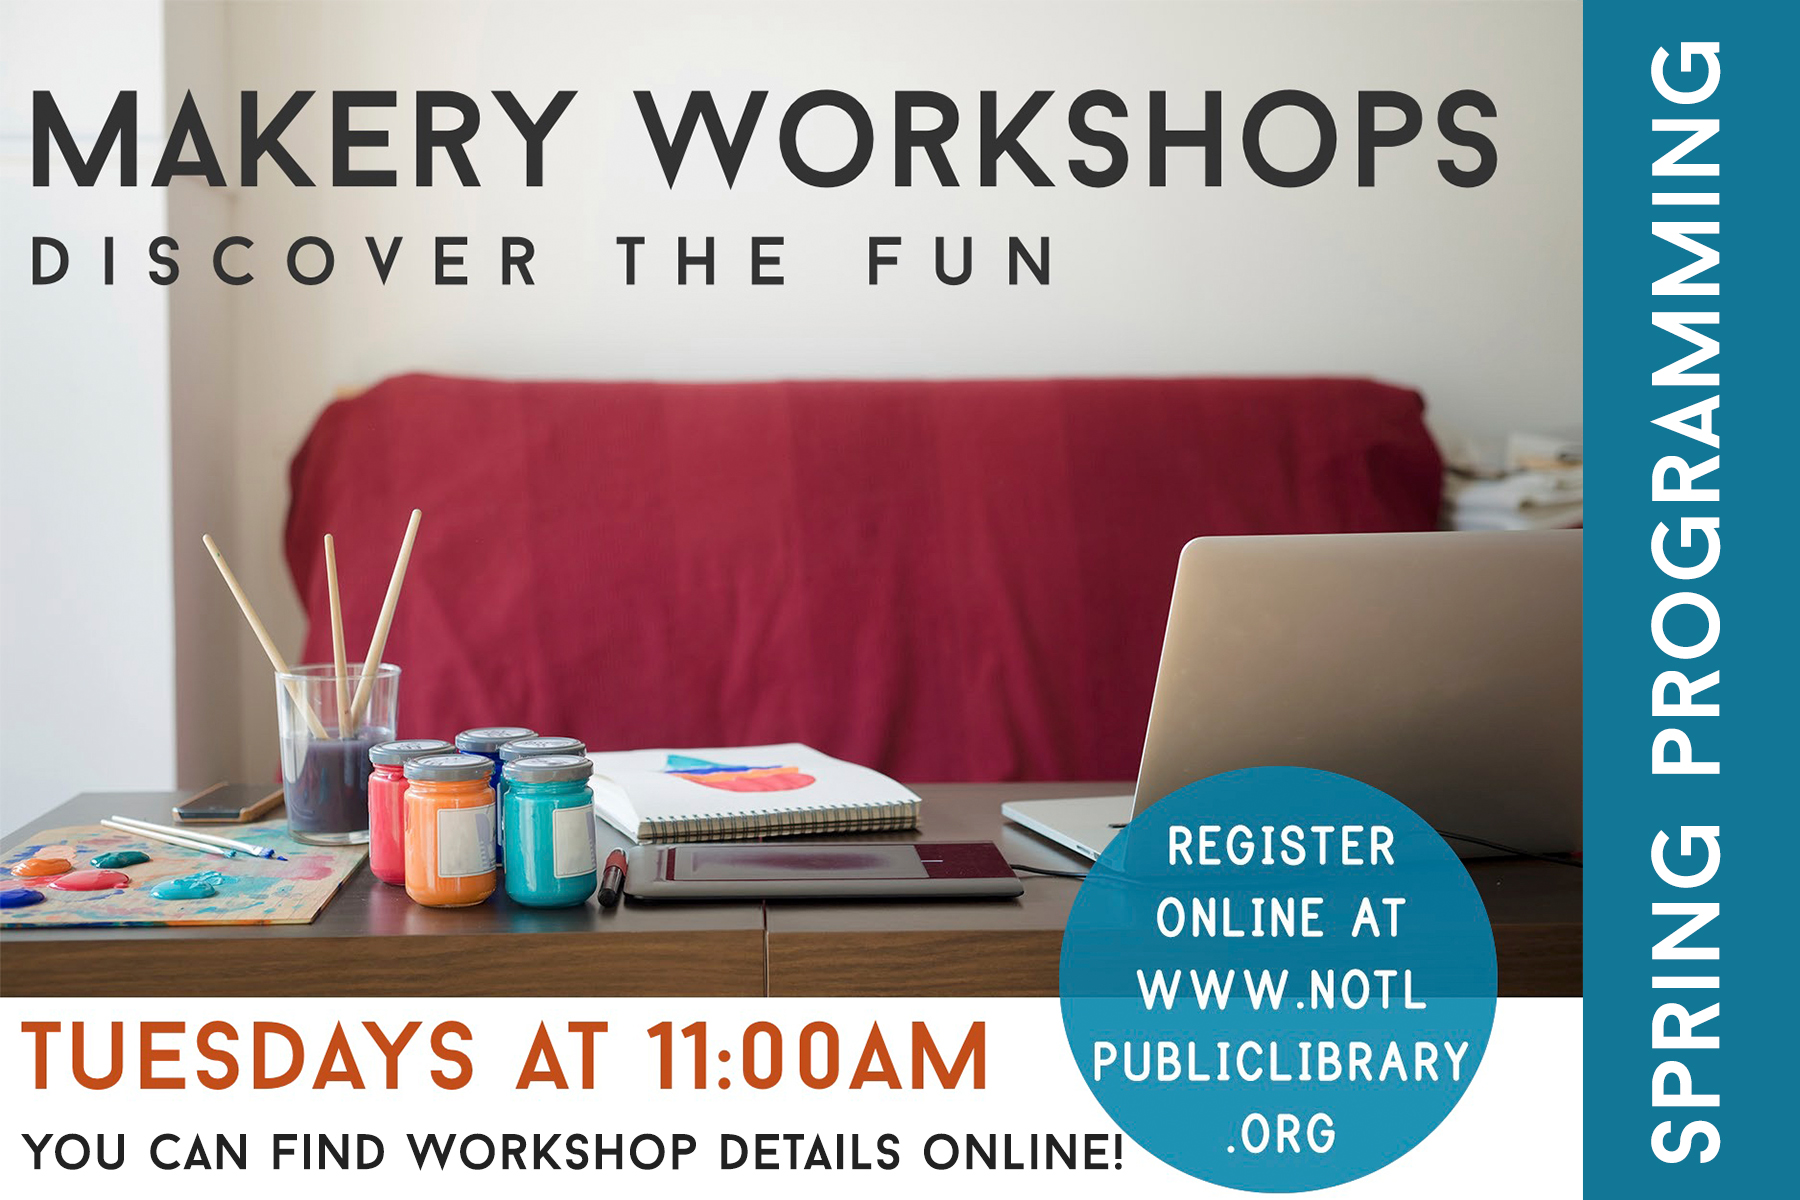 Makery Workshops